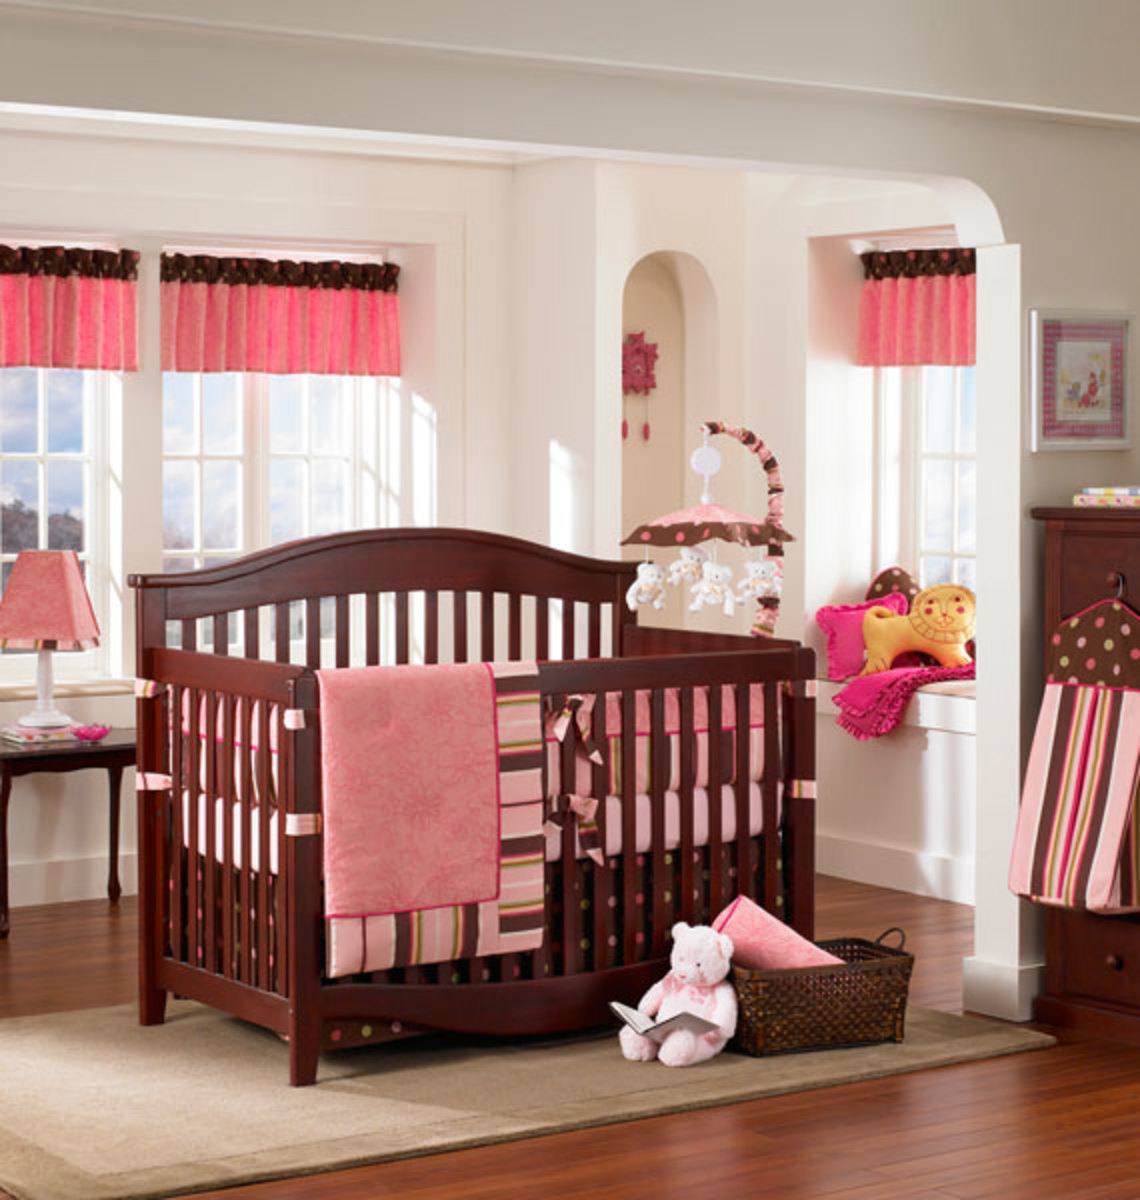 """Raspberry Truffle"" decor by Banana Fish posted on Baby Mania: http://www.babymania.com/RaspberryTrufflebyBananaFish-tp2-1289.html"